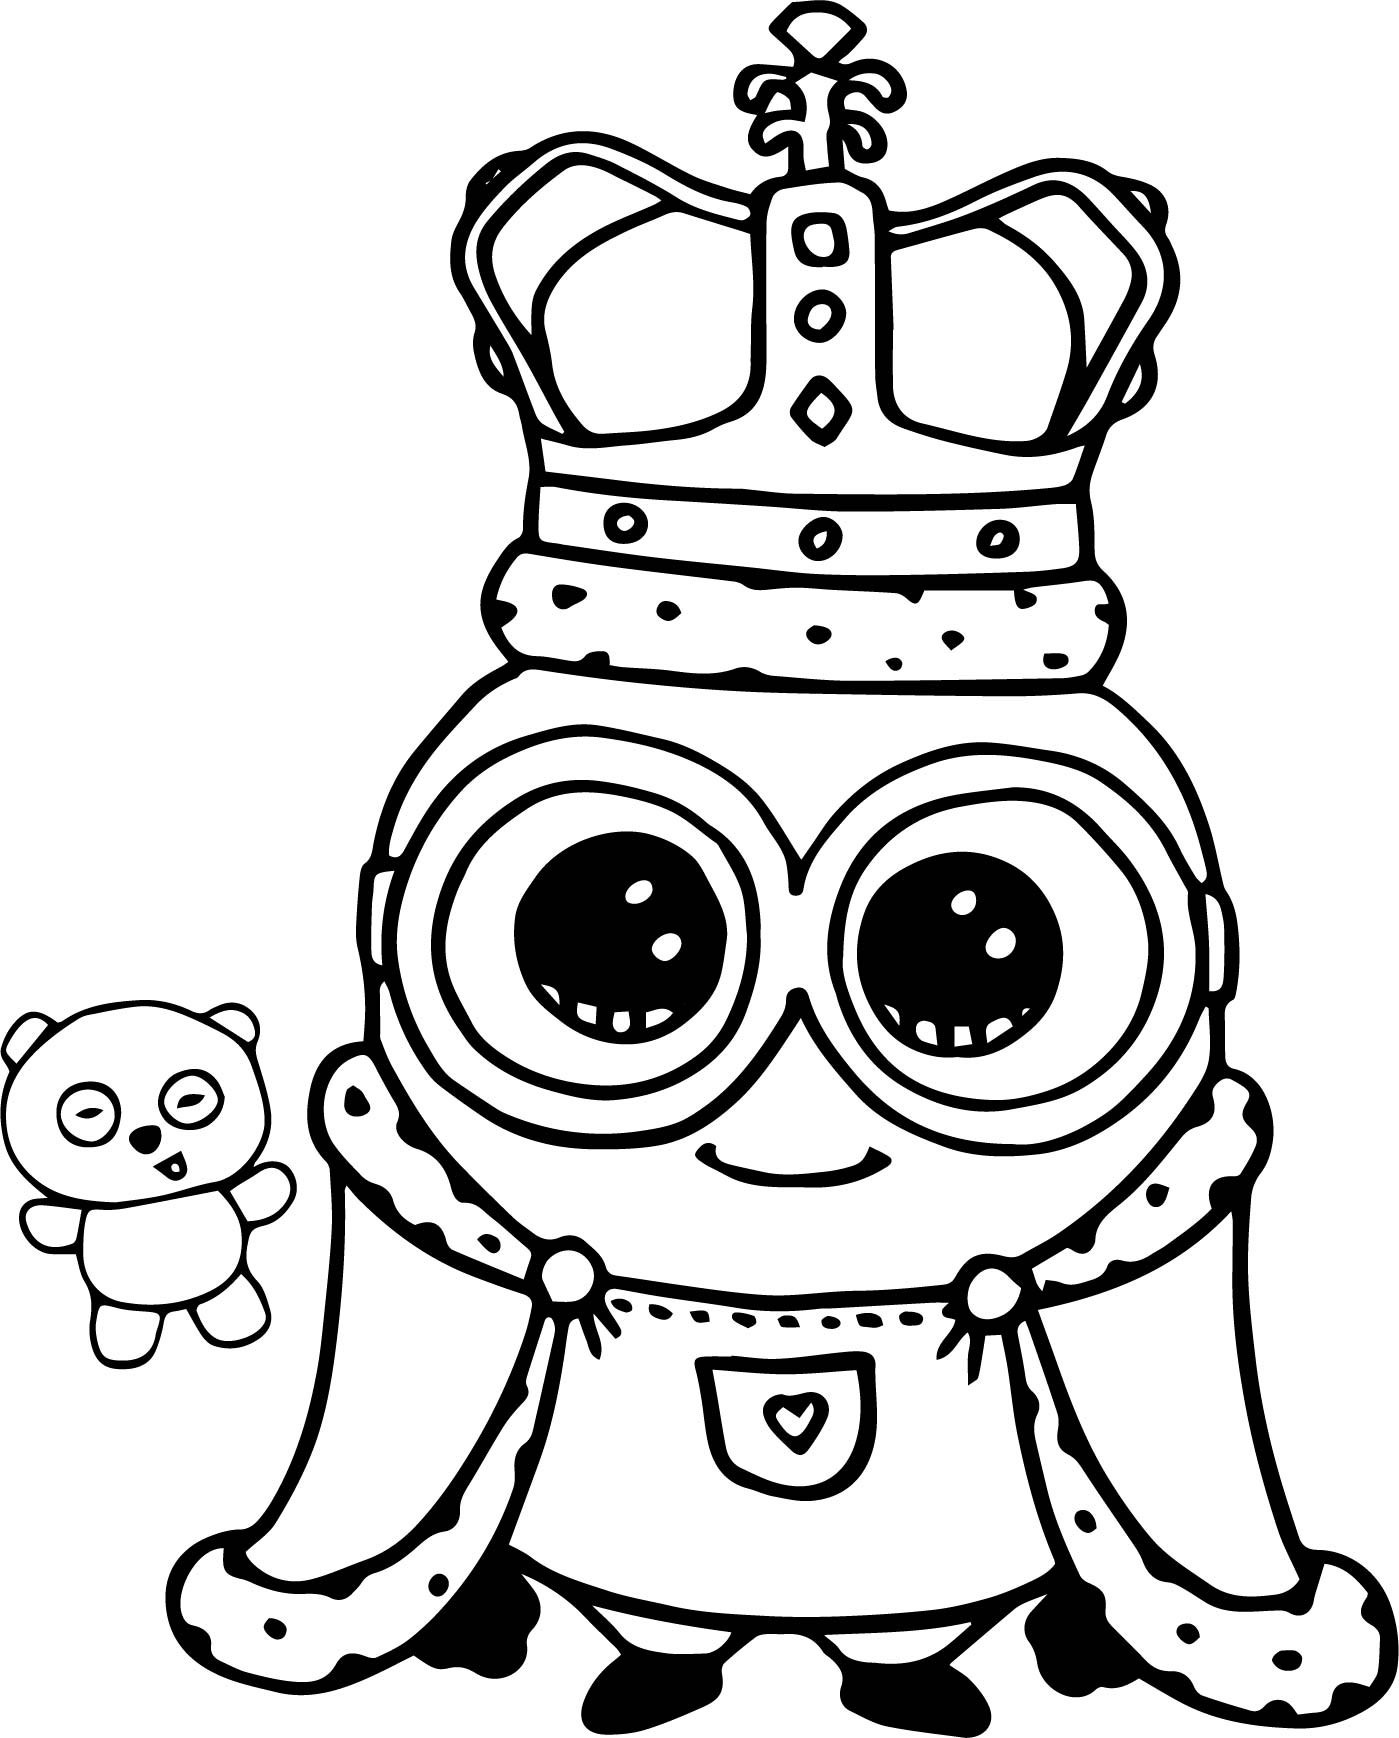 1399x1738 Coloring Pages Bob The Minion How To Draw With A Teddy Bear